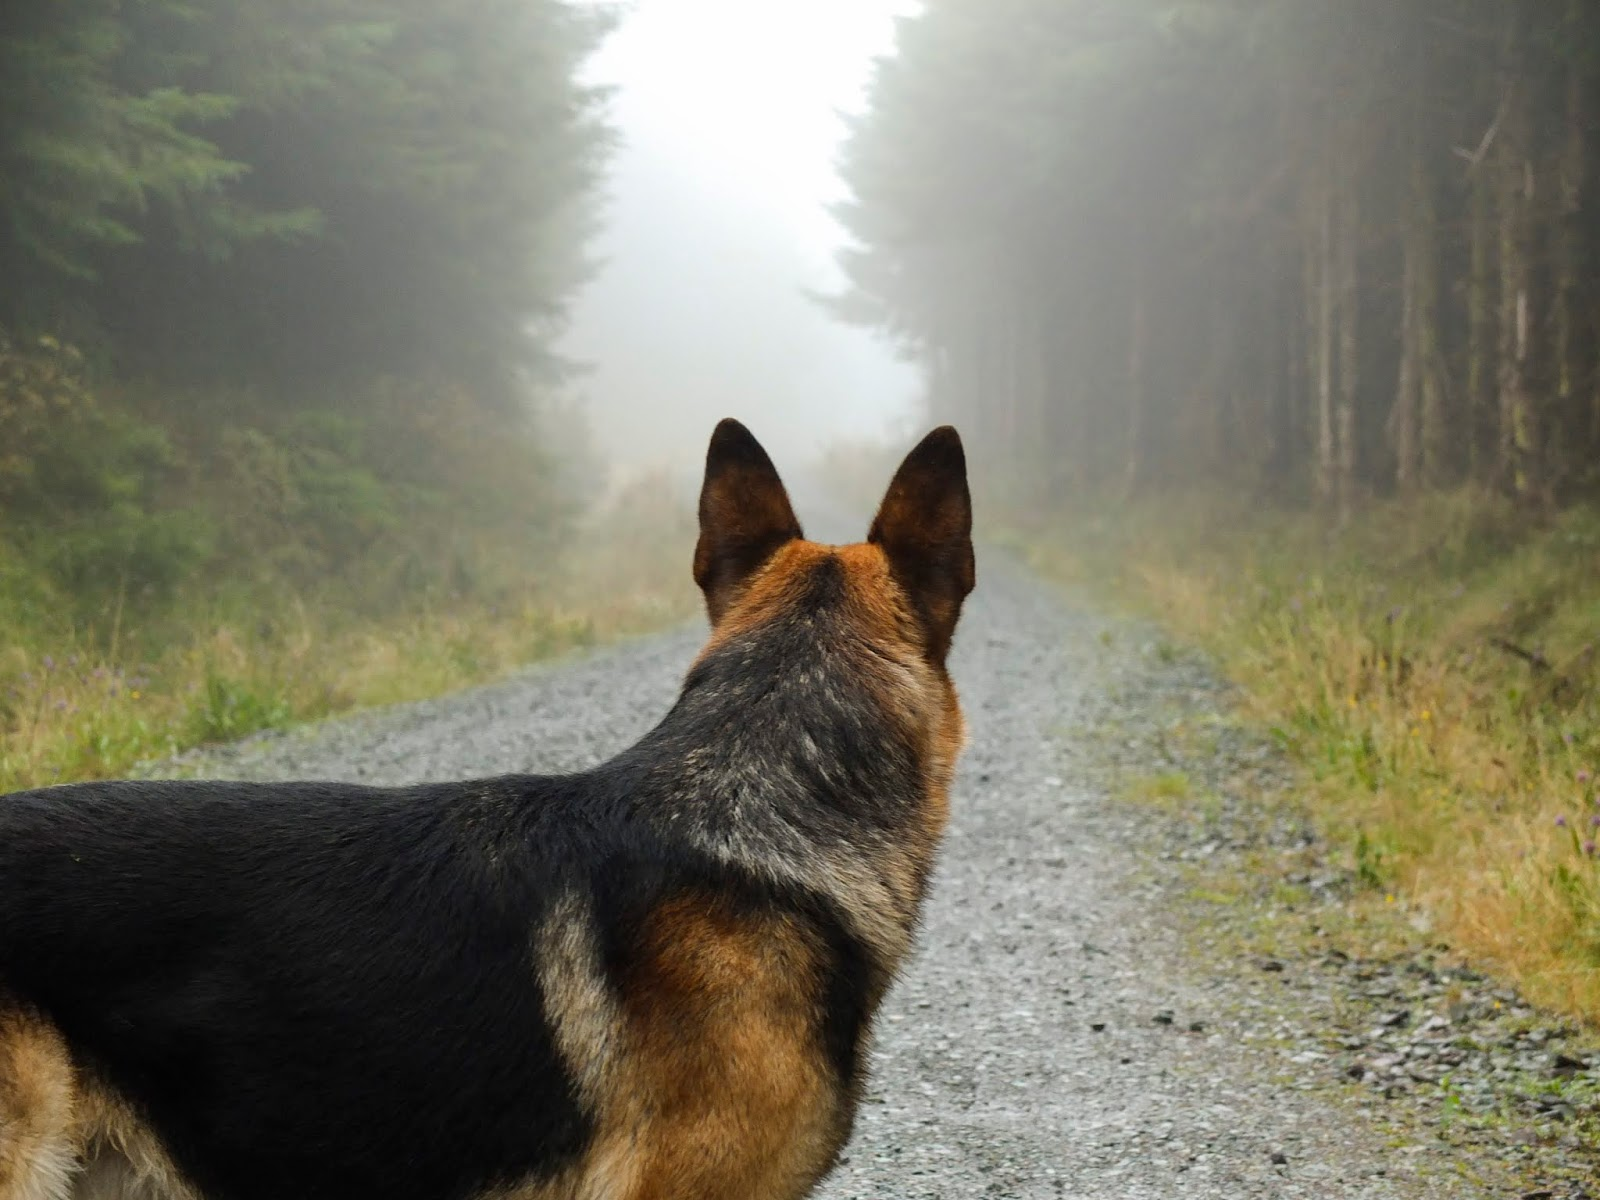 A German Shepherd standing in the middle of a misty and foggy tree lined forest path.